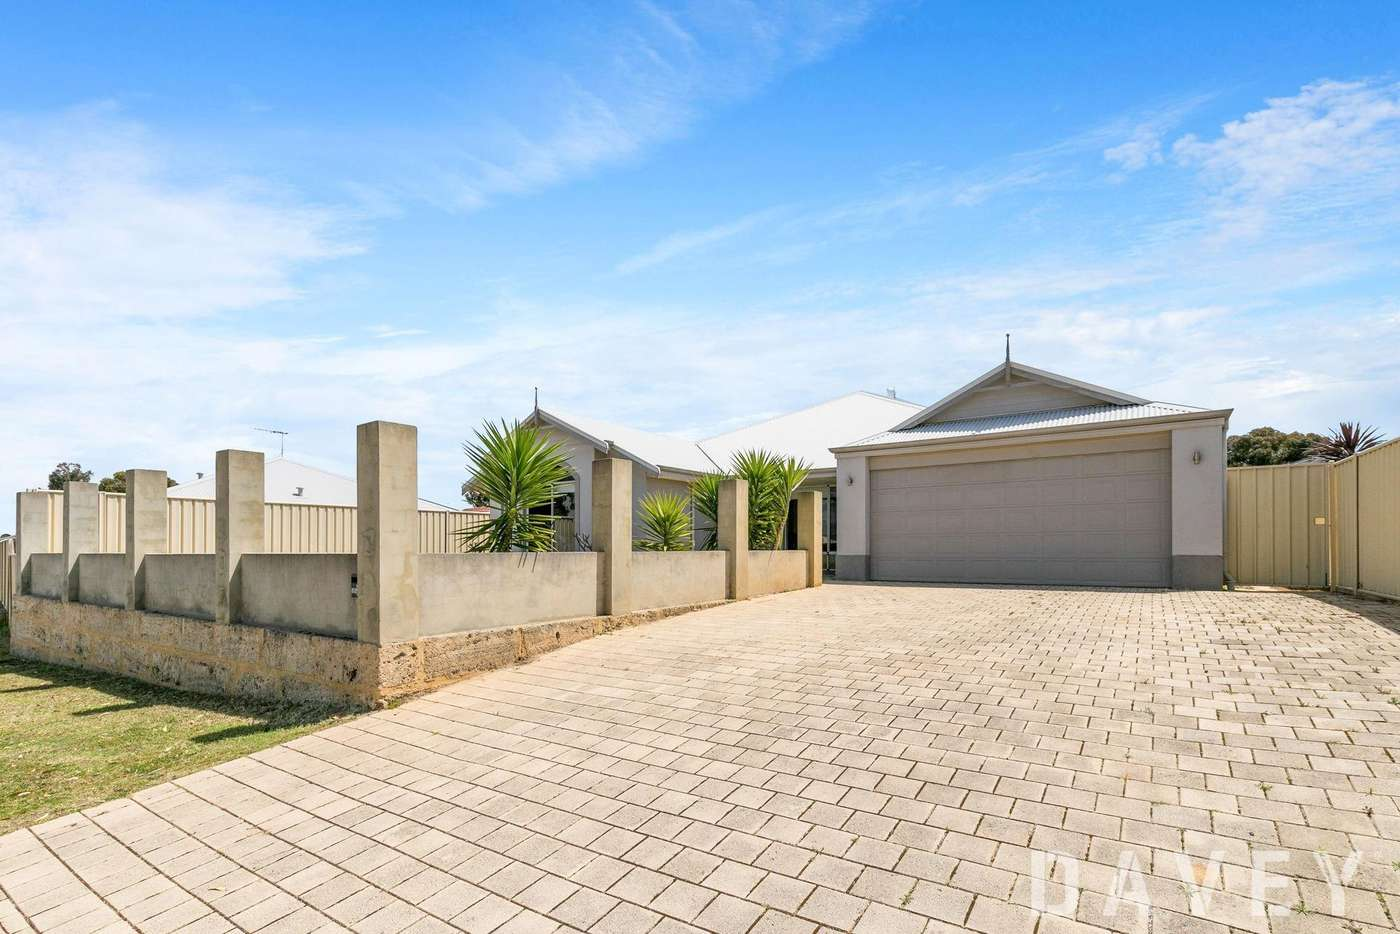 Main view of Homely house listing, 3 Overdene Pass, Banksia Grove WA 6031